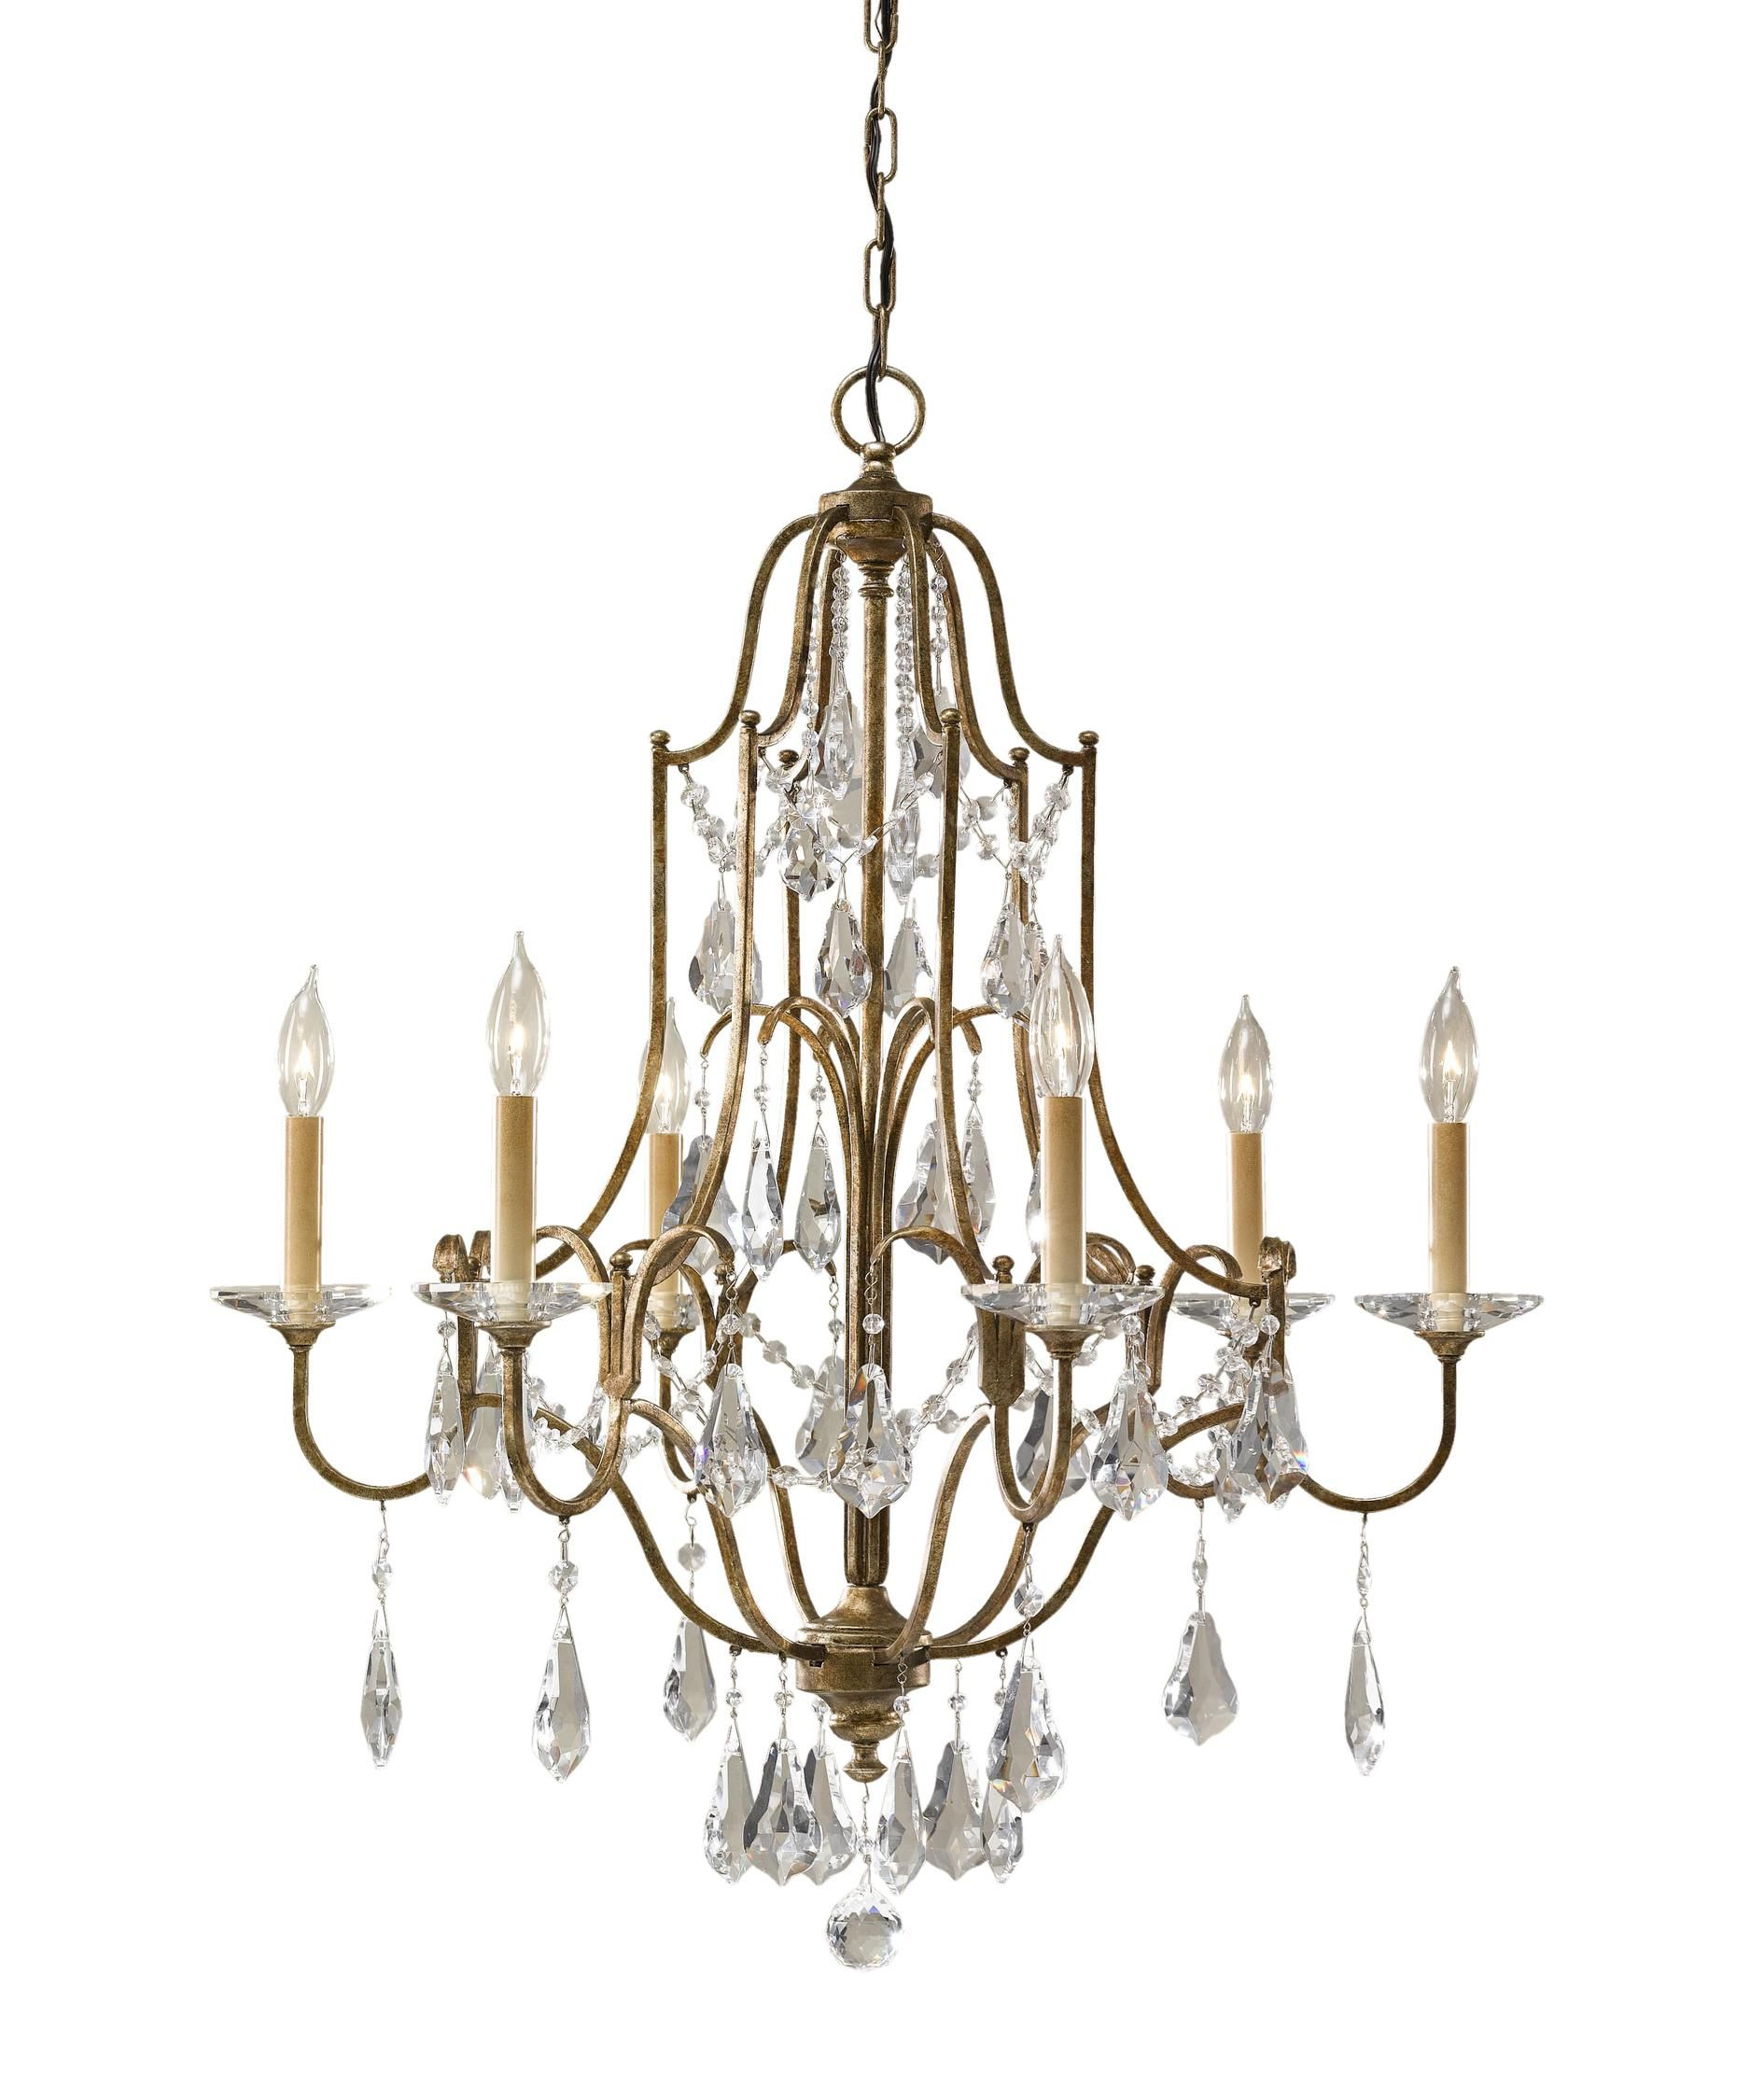 Murray Feiss Valentina 29 Inch Wide 6 Light Chandelier Capitol Lighting 1 800lighting Com